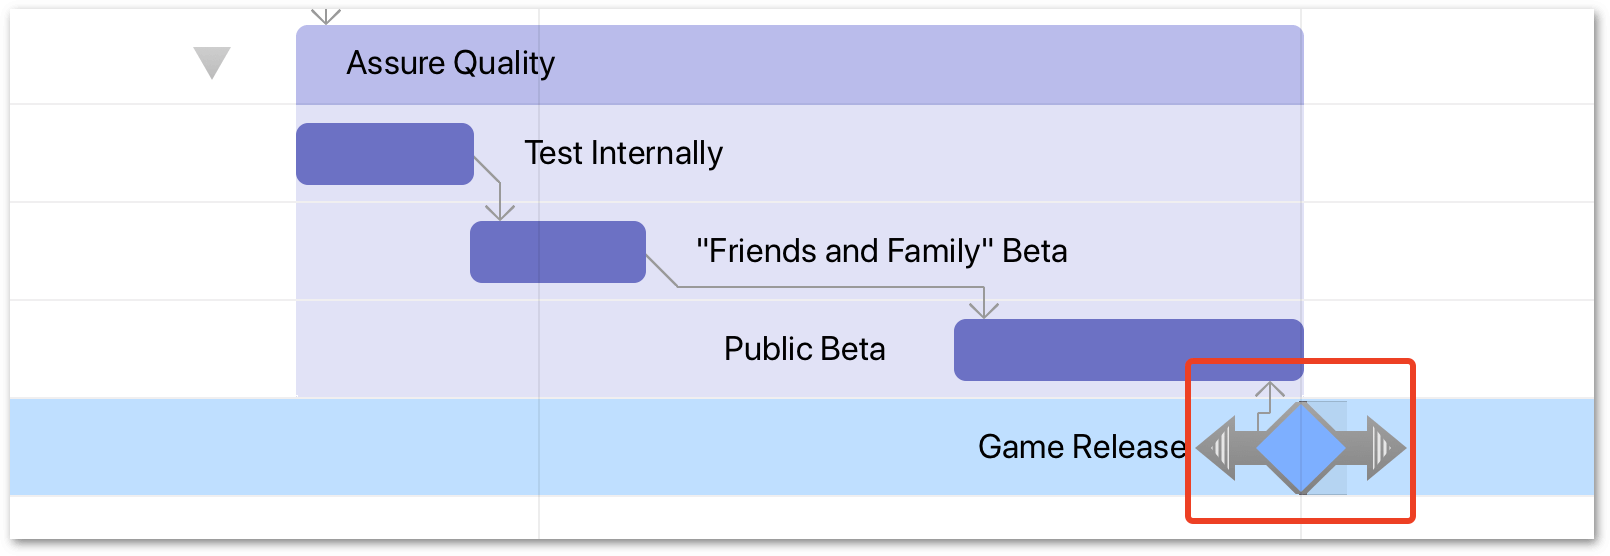 A highlight is placed around the Game Release milestone, which now has a dependency tied from its start to the end of the Public Beta task.